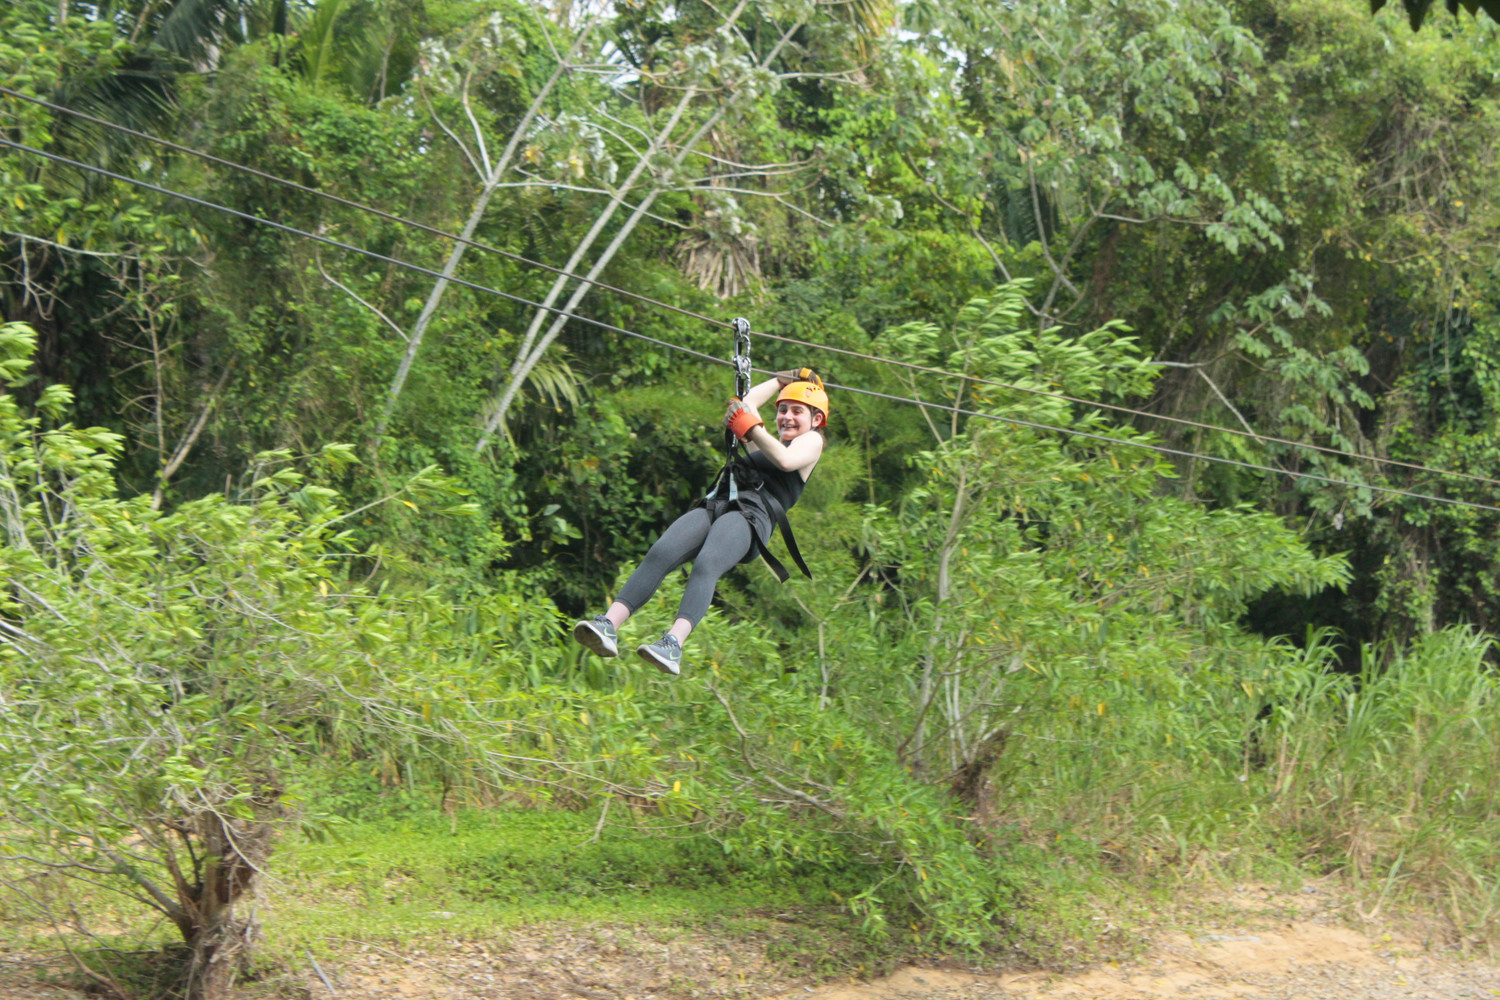 Herald Gazette intern Zoe Malin held onto her helmet as she zip-lined.